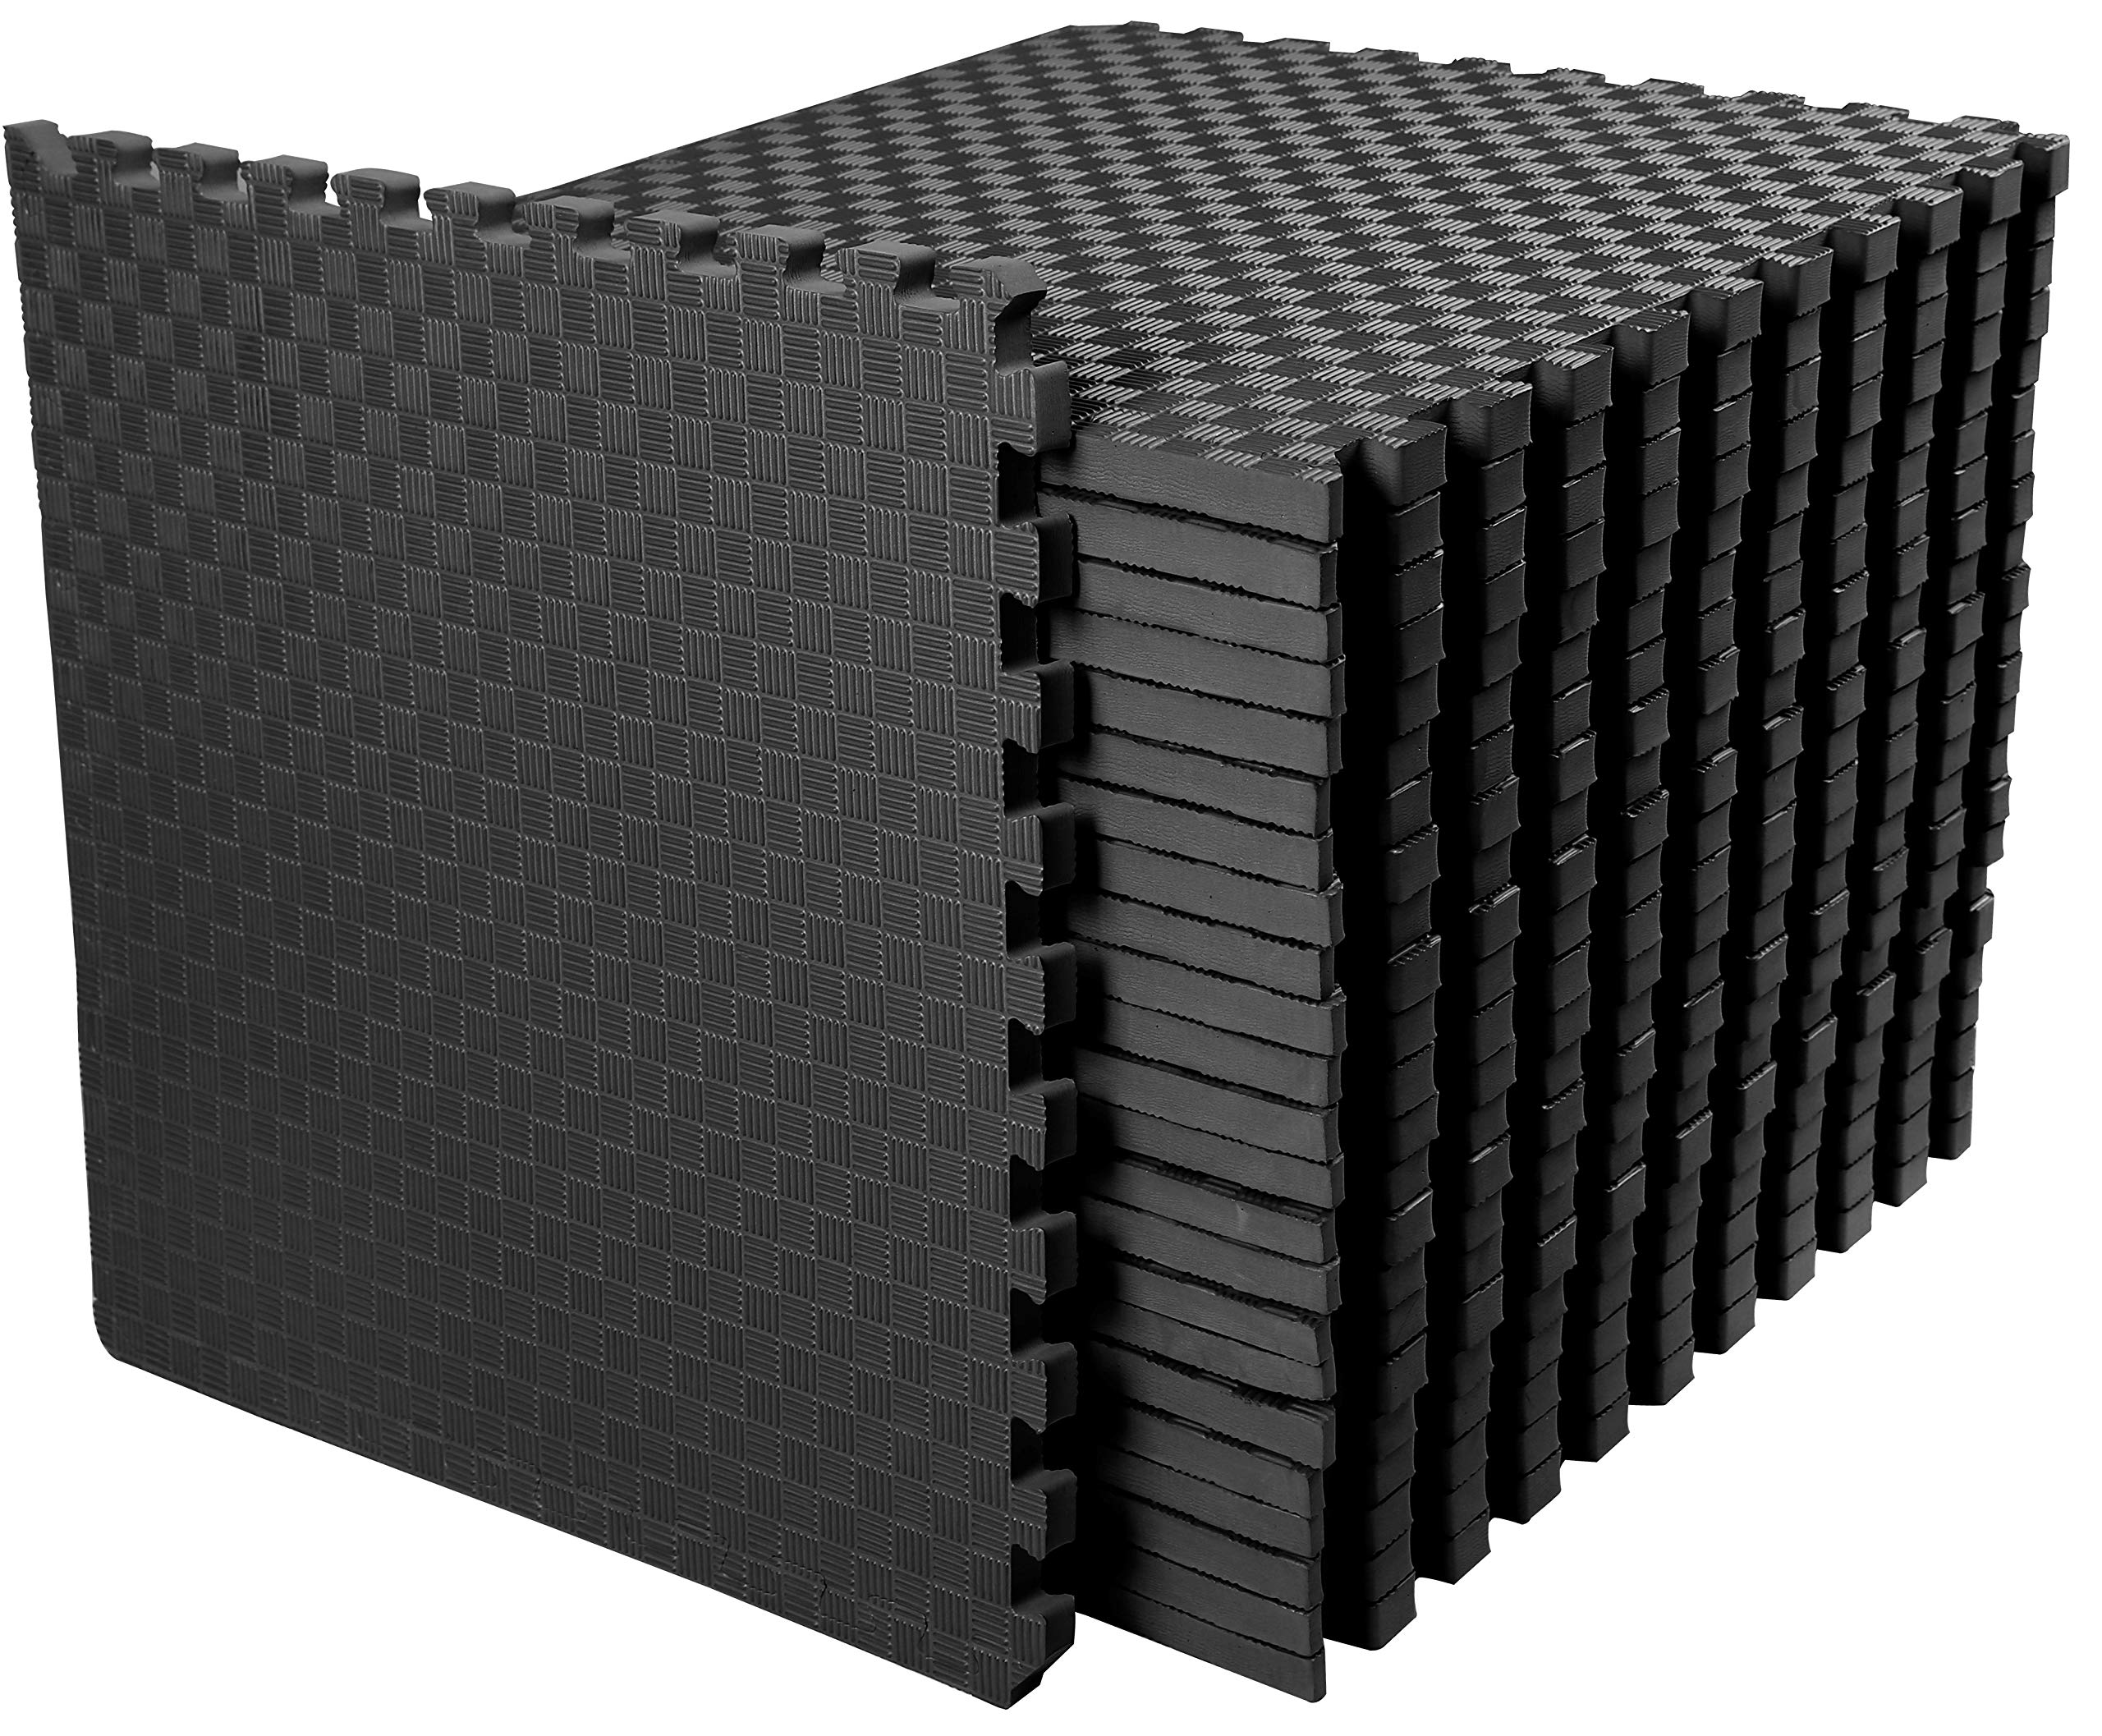 BalanceFrom 1'' Extra Thick Puzzle Exercise Mat with EVA Foam Interlocking Tiles for MMA, Exercise, Gymnastics and Home Gym Protective Flooring, 72 Square Feet (Black) by BalanceFrom